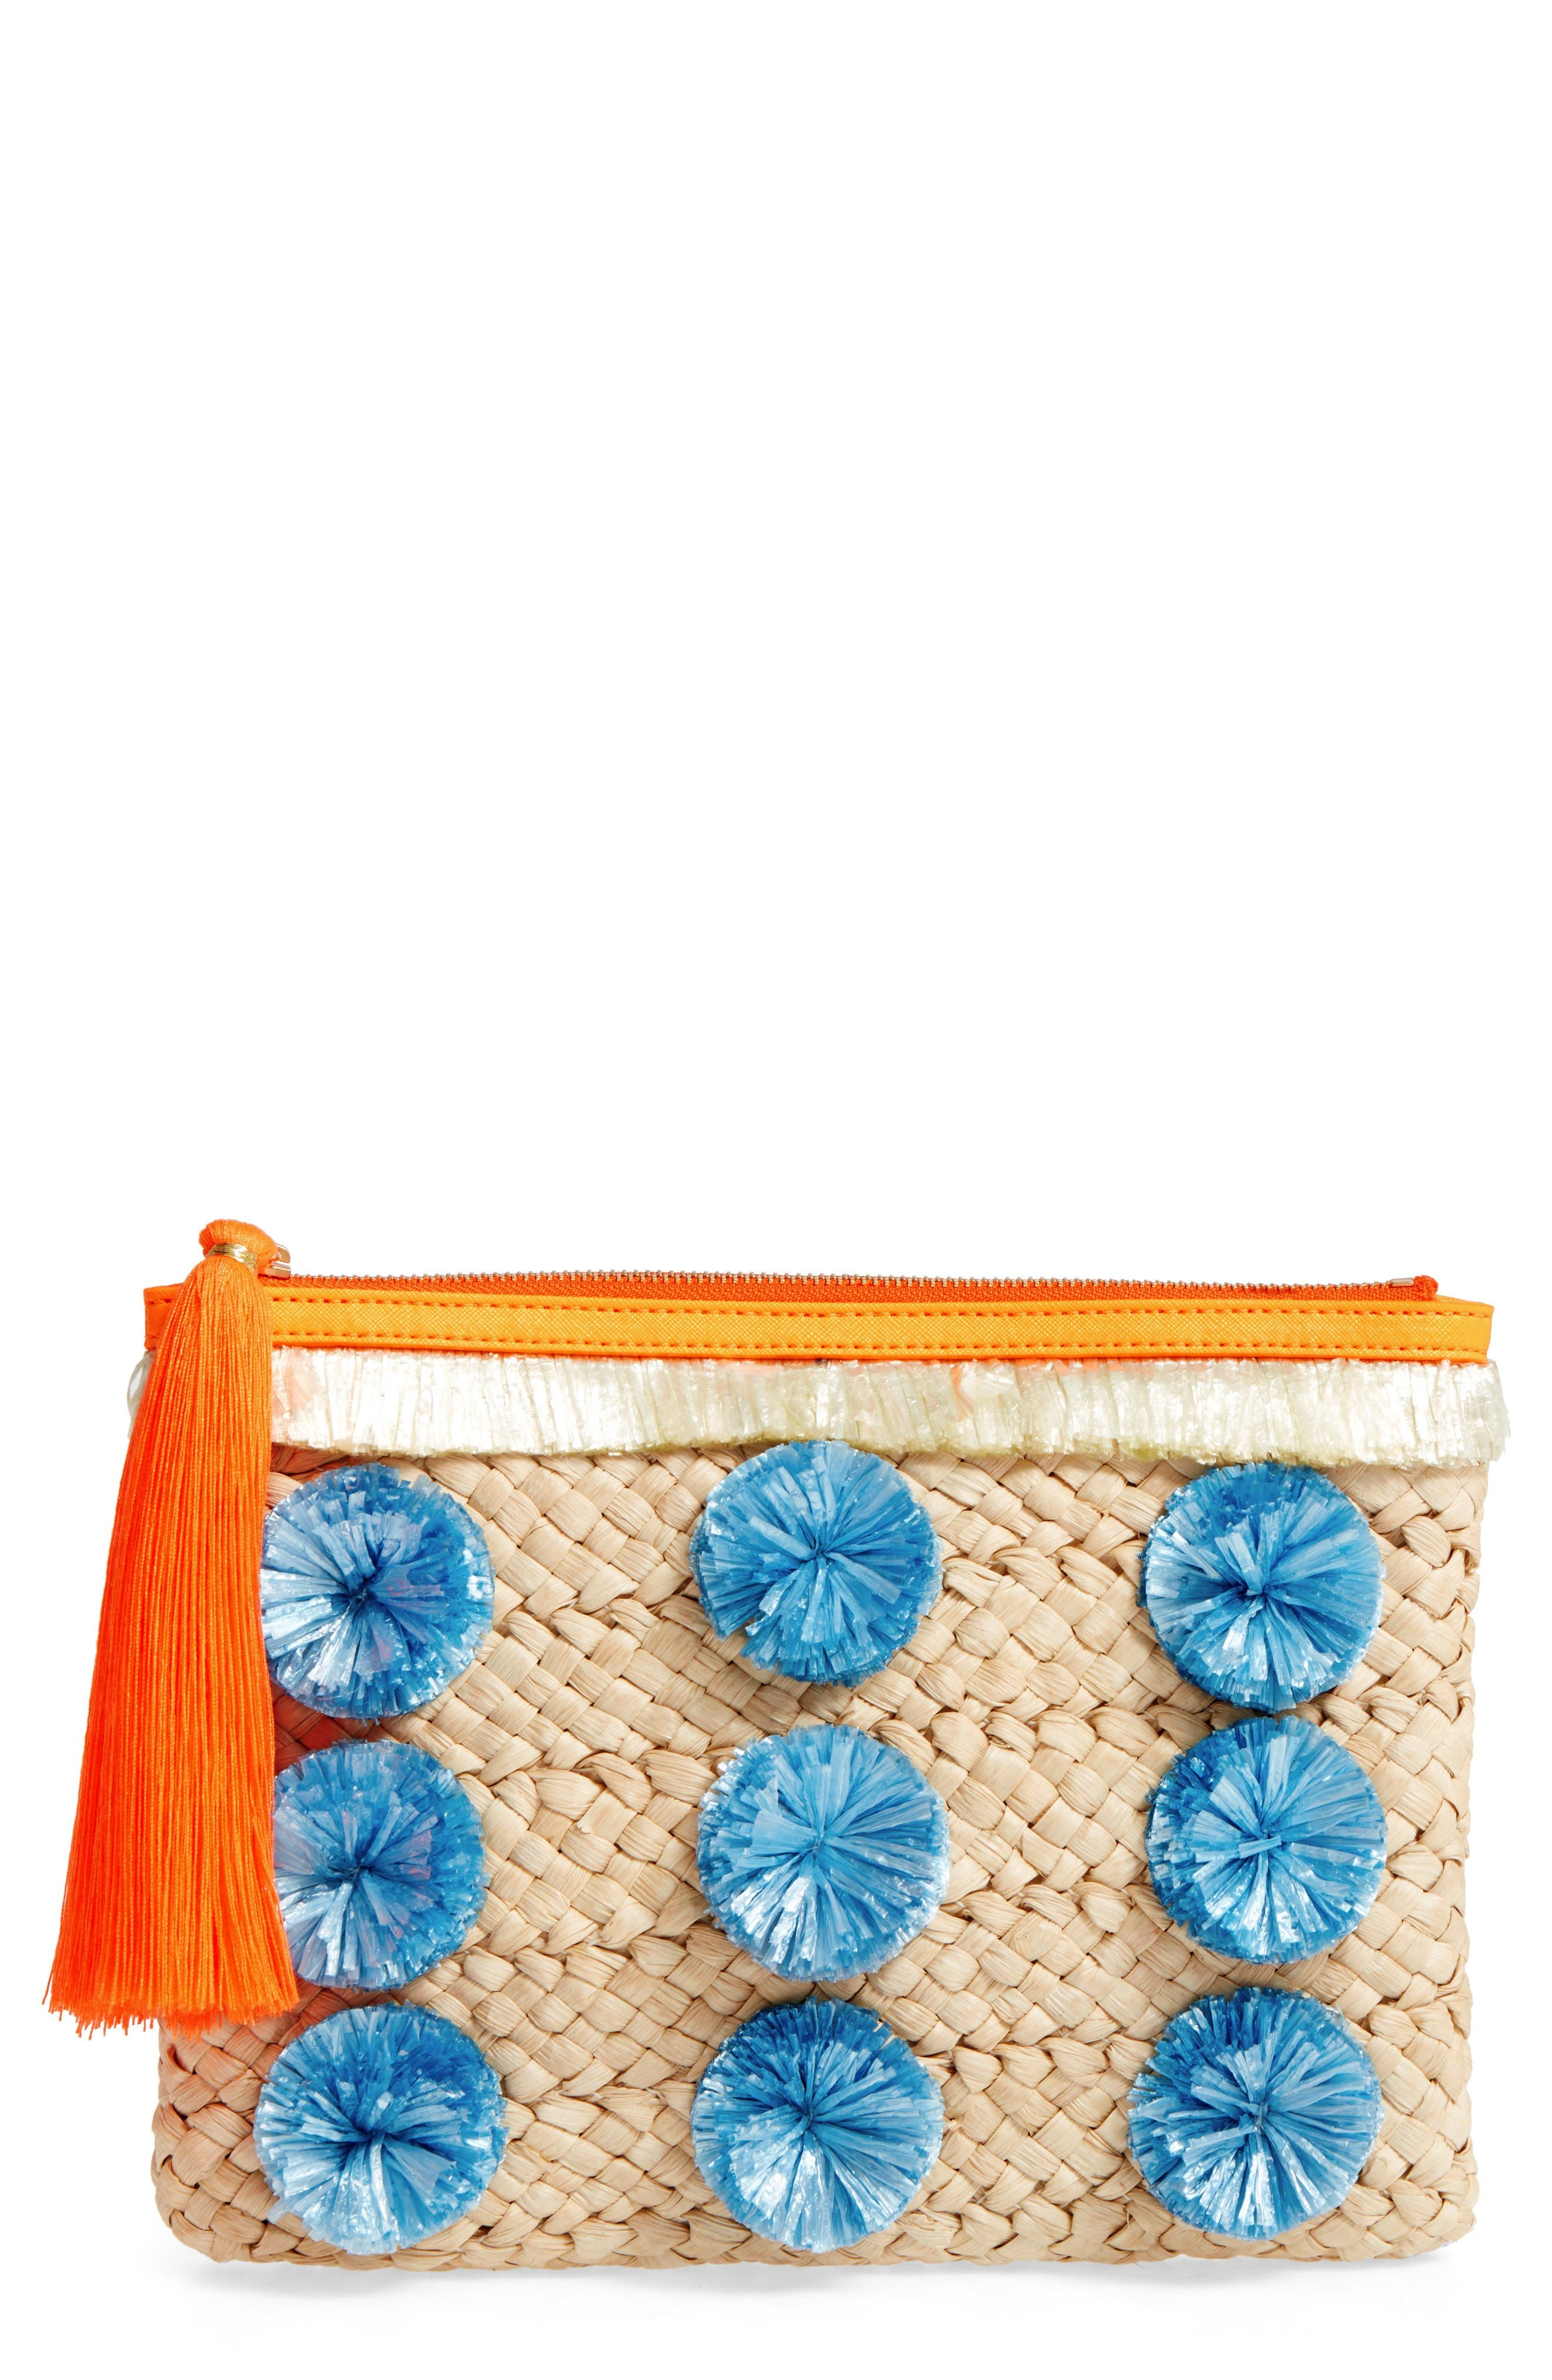 Main Image - Milly Pompom Straw Clutch